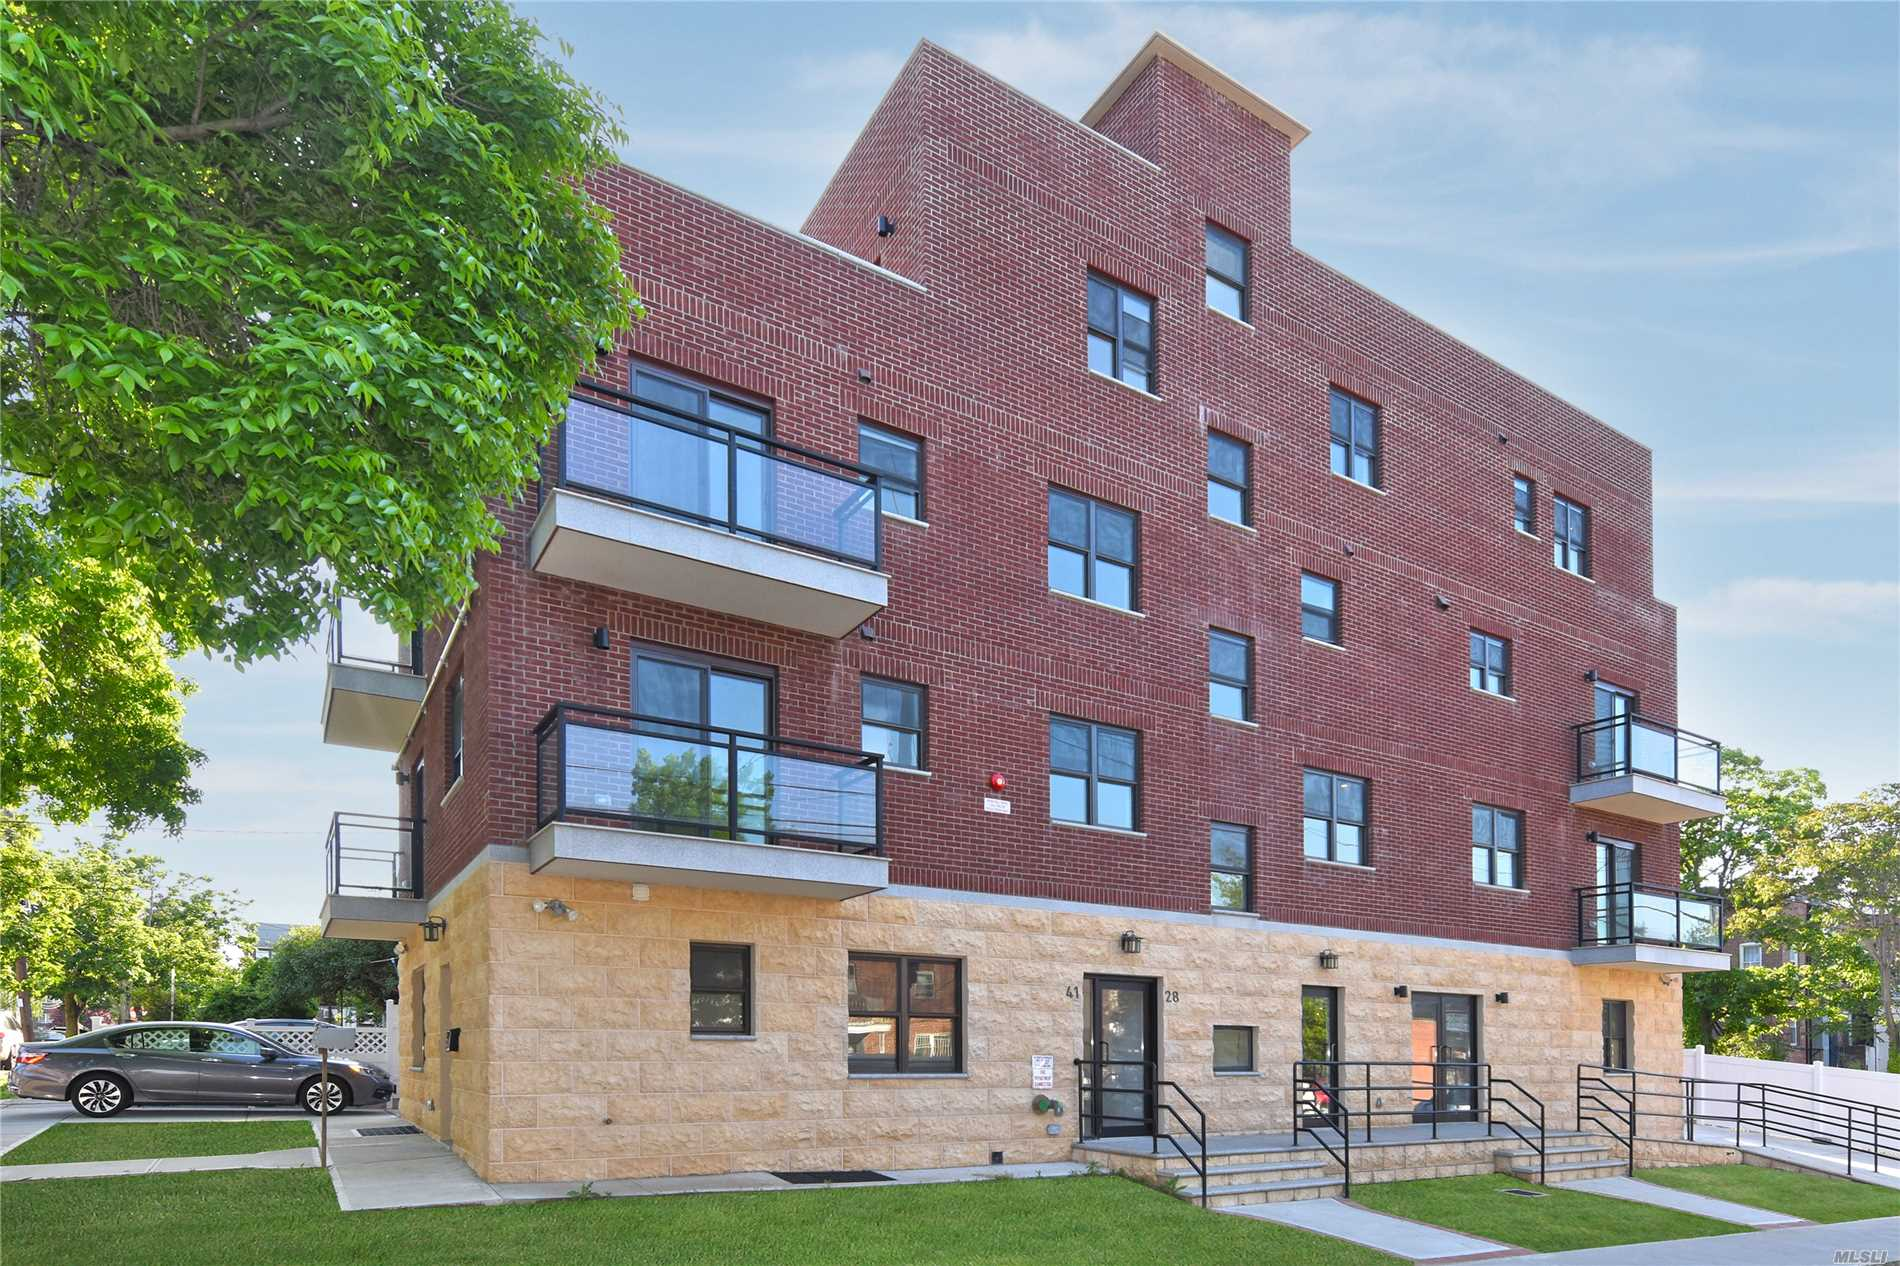 Brand New Condo. 15 years tax abatement. Very bright, face to East & South, with Balcony. Washer and Dryer in the unit. Close to transit hub, Walk to LIRR , Buses to Flushing Main street, shops and restaurants. Convenient and quiet neighborhood.Parking Space is available for sale.